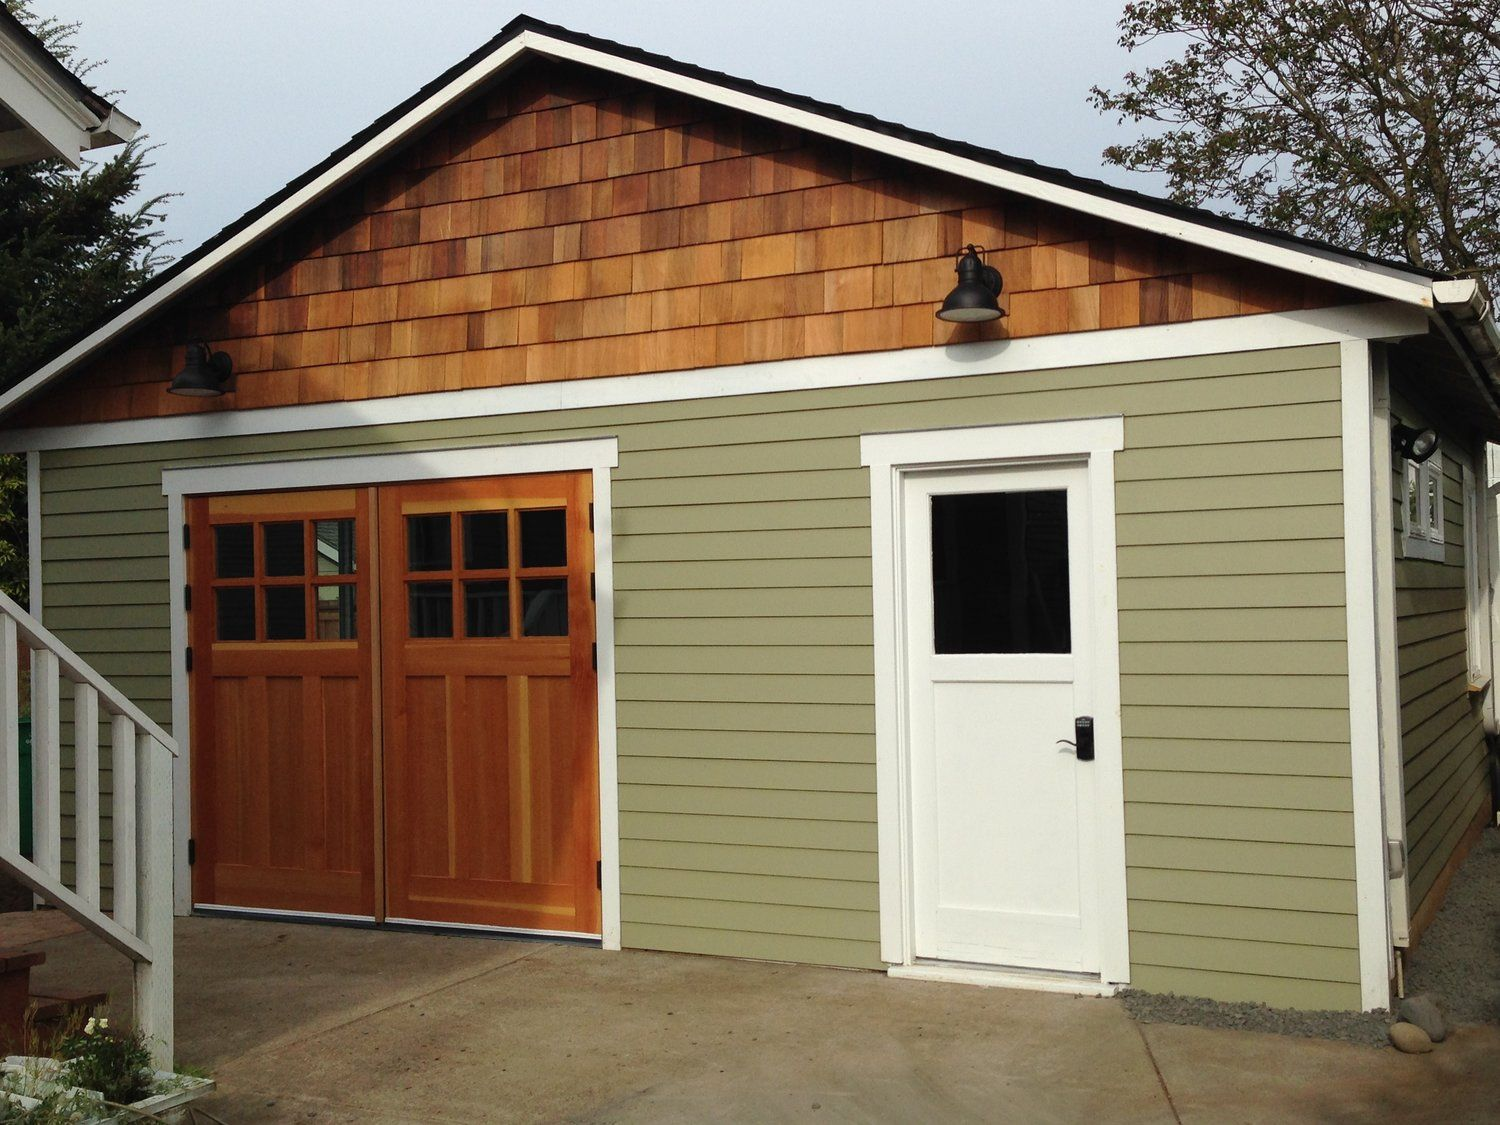 Image Result For Garage Conversion With Stairs Garage Conversion Granny Flat Garage Conversion Granny Flat